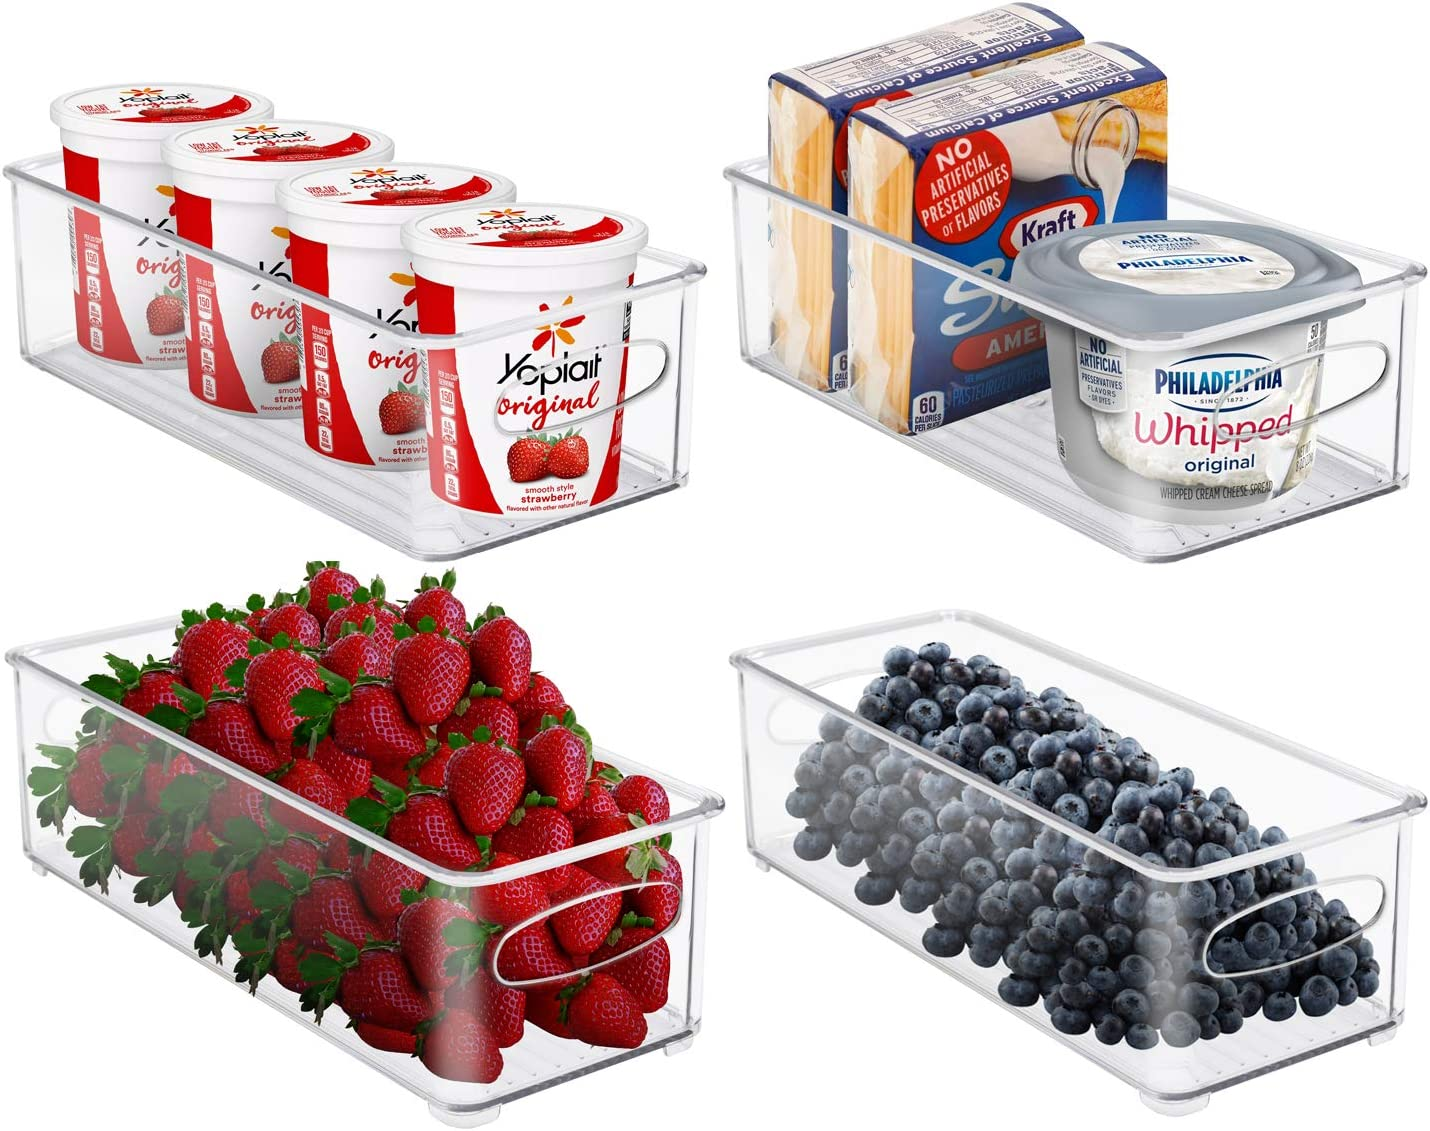 Sorbus Plastic Storage Bins Stackable Clear Pantry Organizer Box Bin Containers for Organizing Kitchen Fridge, Food, Snack Pantry Cabinet, Fruit, Vegetables, Bathroom Supplies (4-Pack)